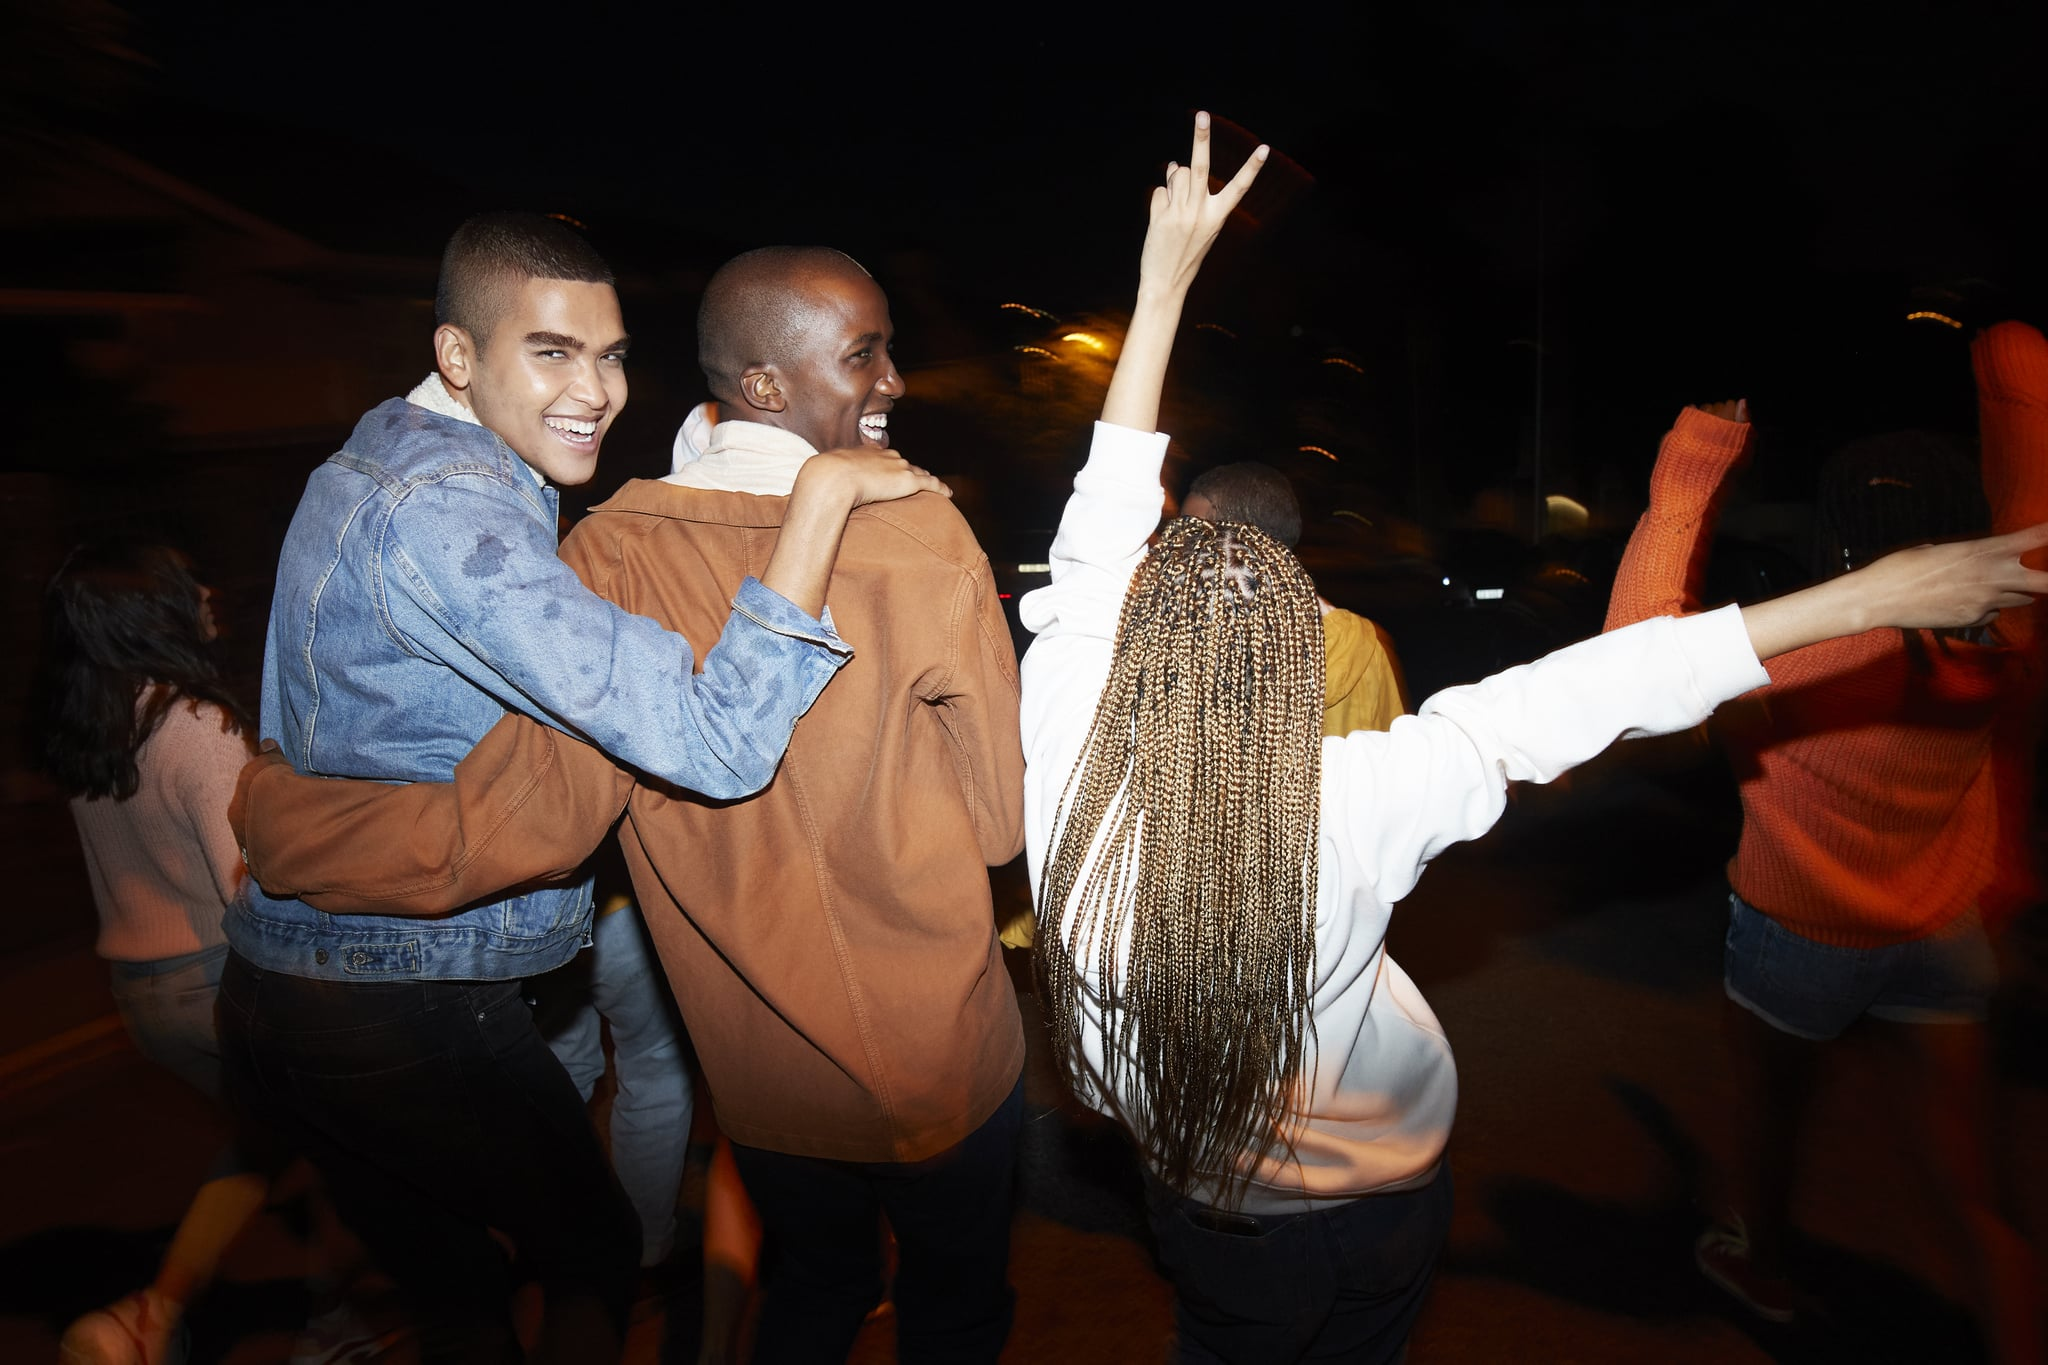 Cheerful young males dancing with multi-ethnic friends at night